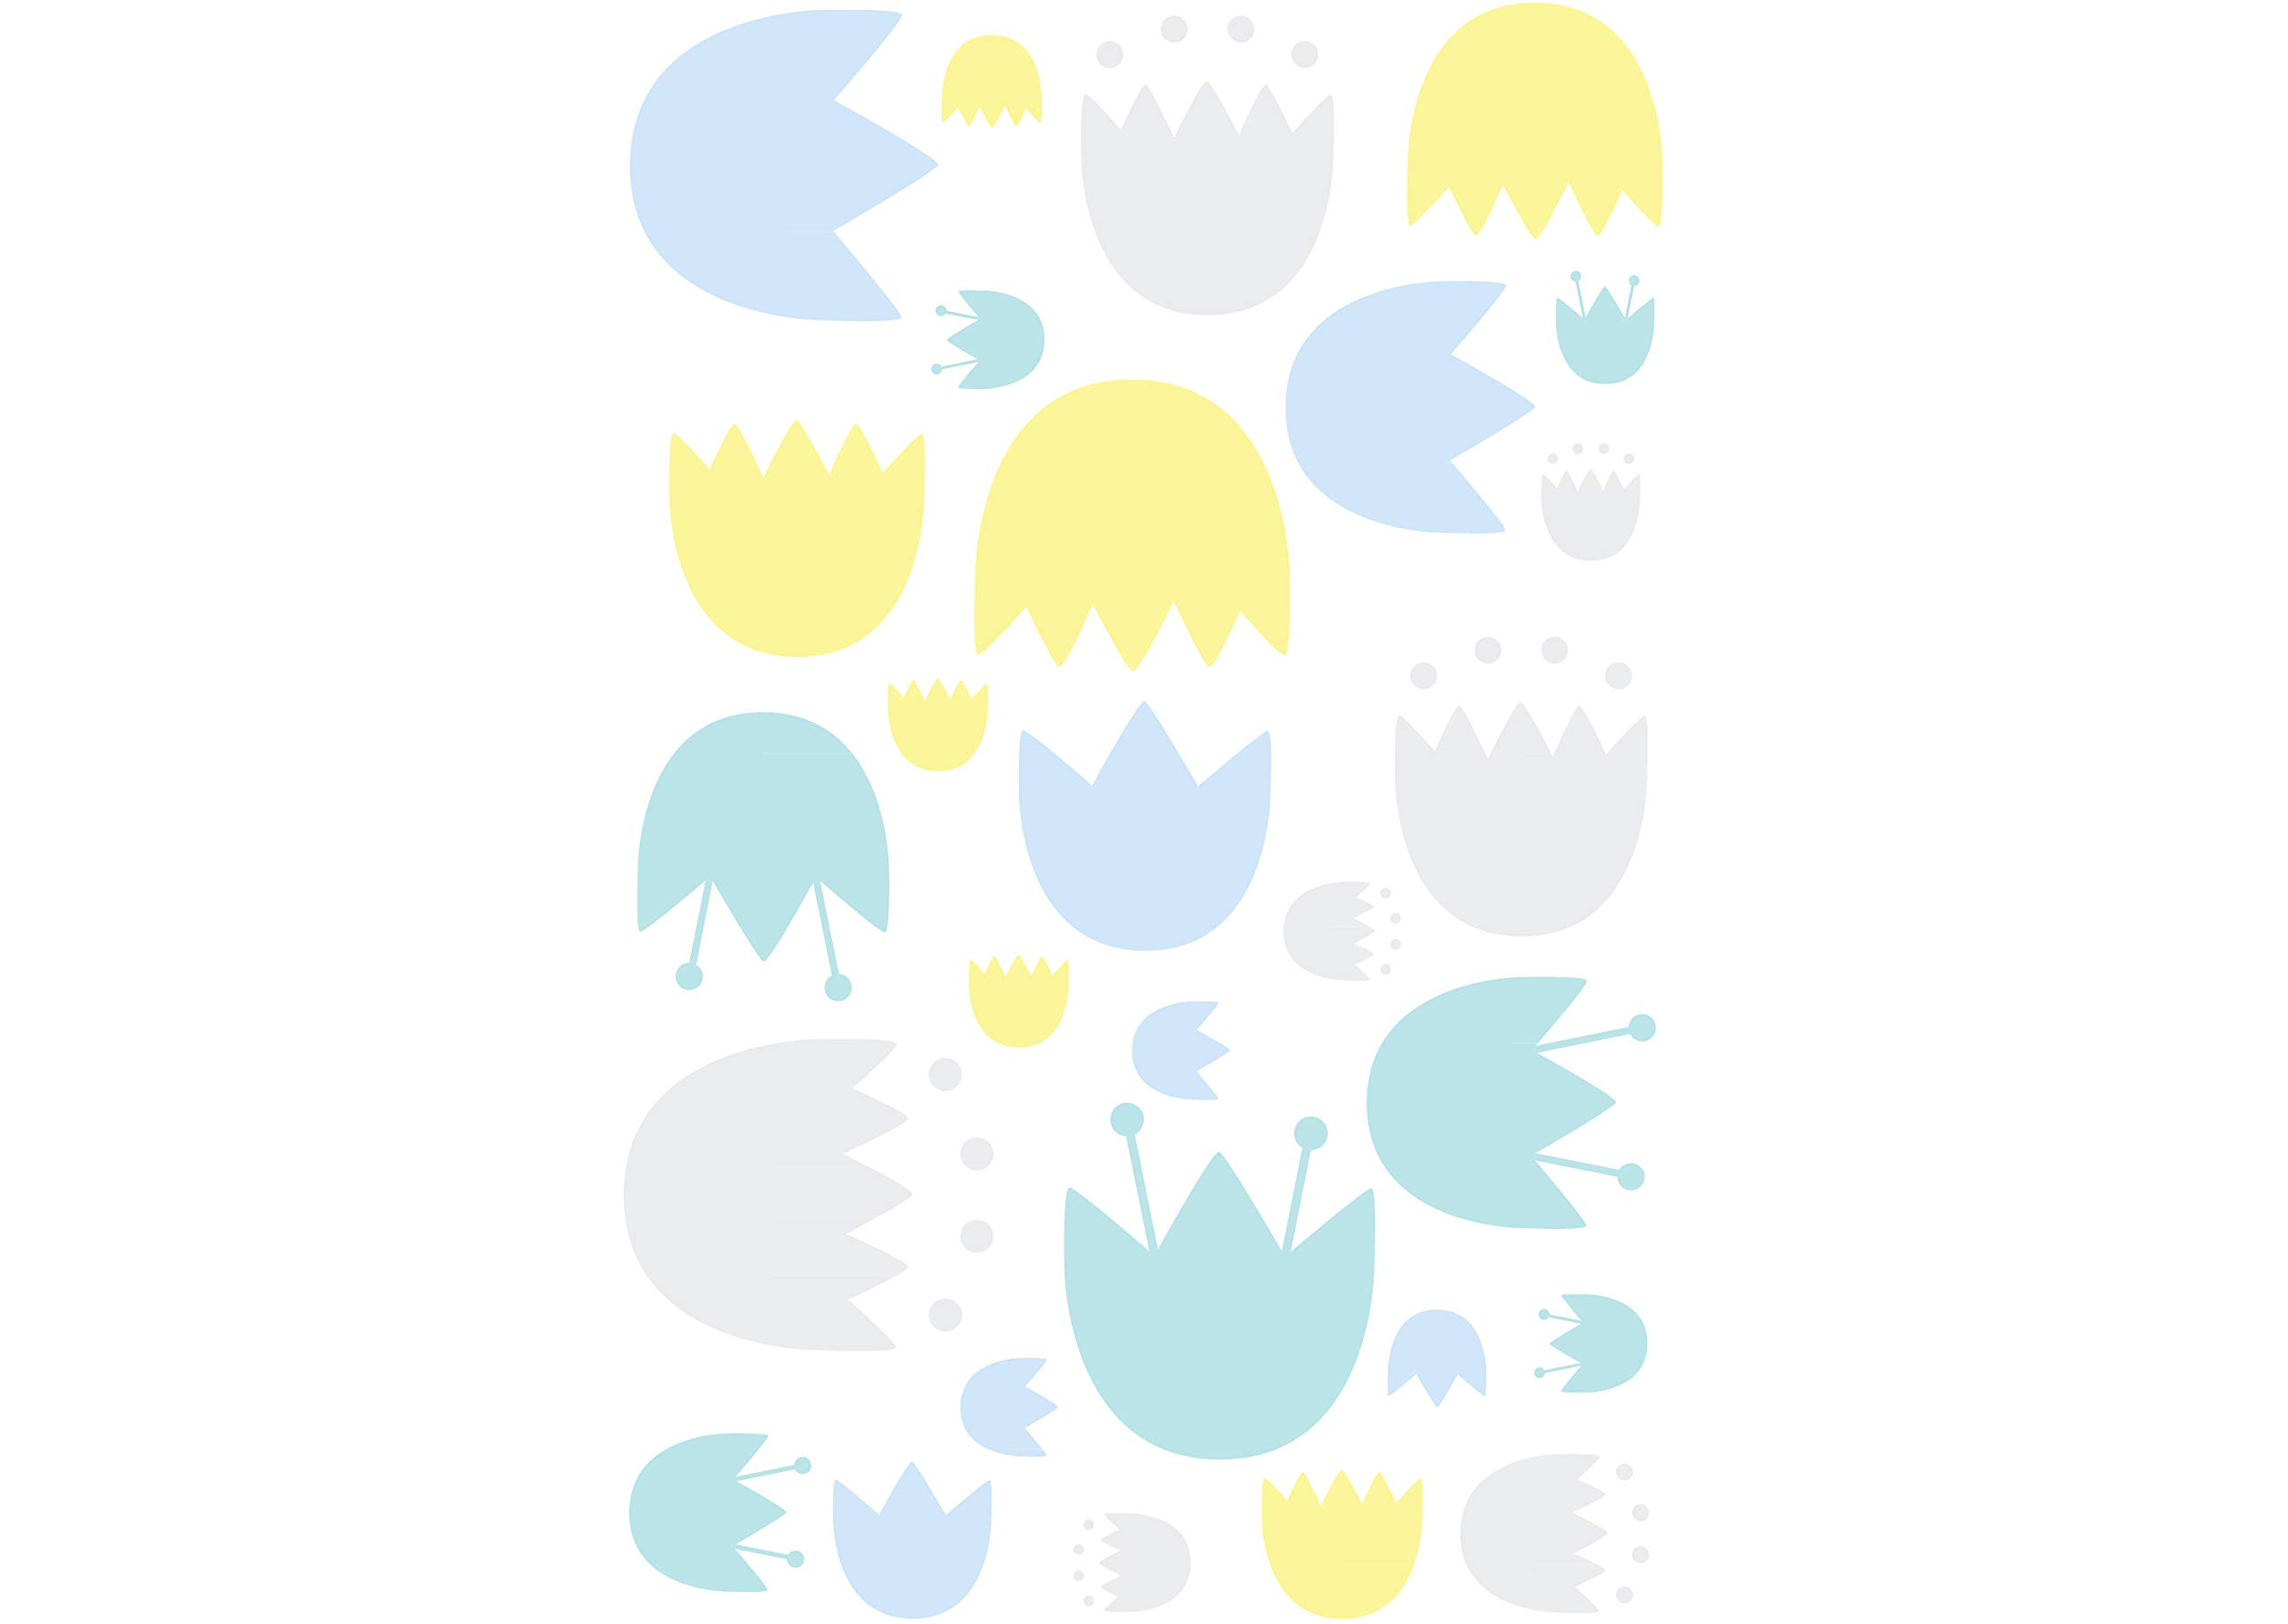 Fitted Crib Sheet Stroller Blanket Play Blanket Contour Changing Pad Cover Babyletto 6-Piece Set Tulip Garden Crib Skirt Wall Decals